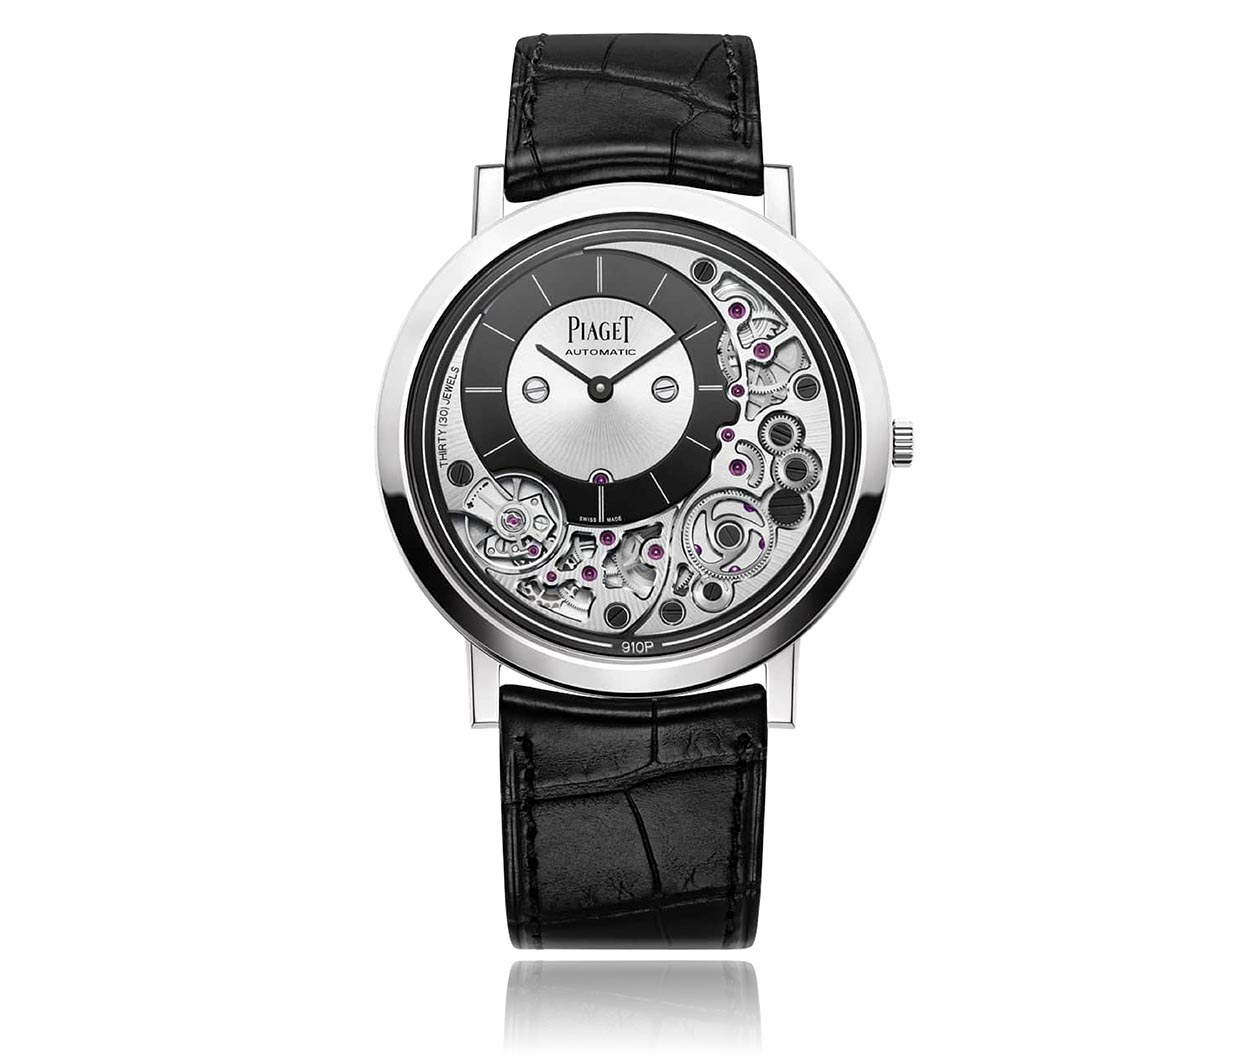 Piaget Altiplano UltimateAutomaticWatch G0A43121 Carousel 1 FINAL